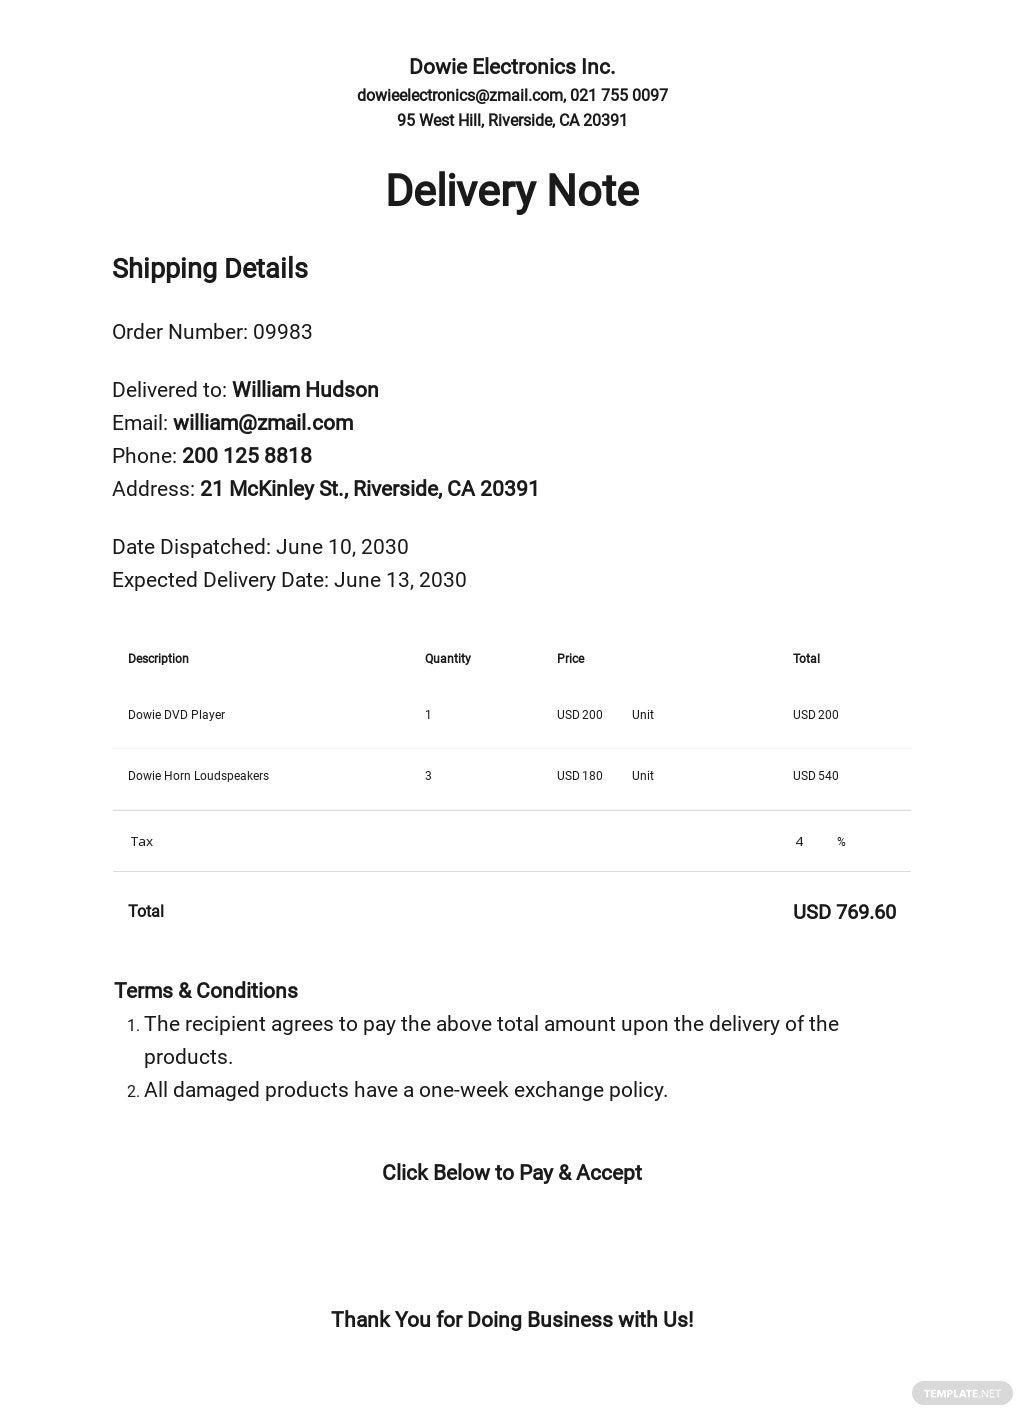 Product Delivery Note Template